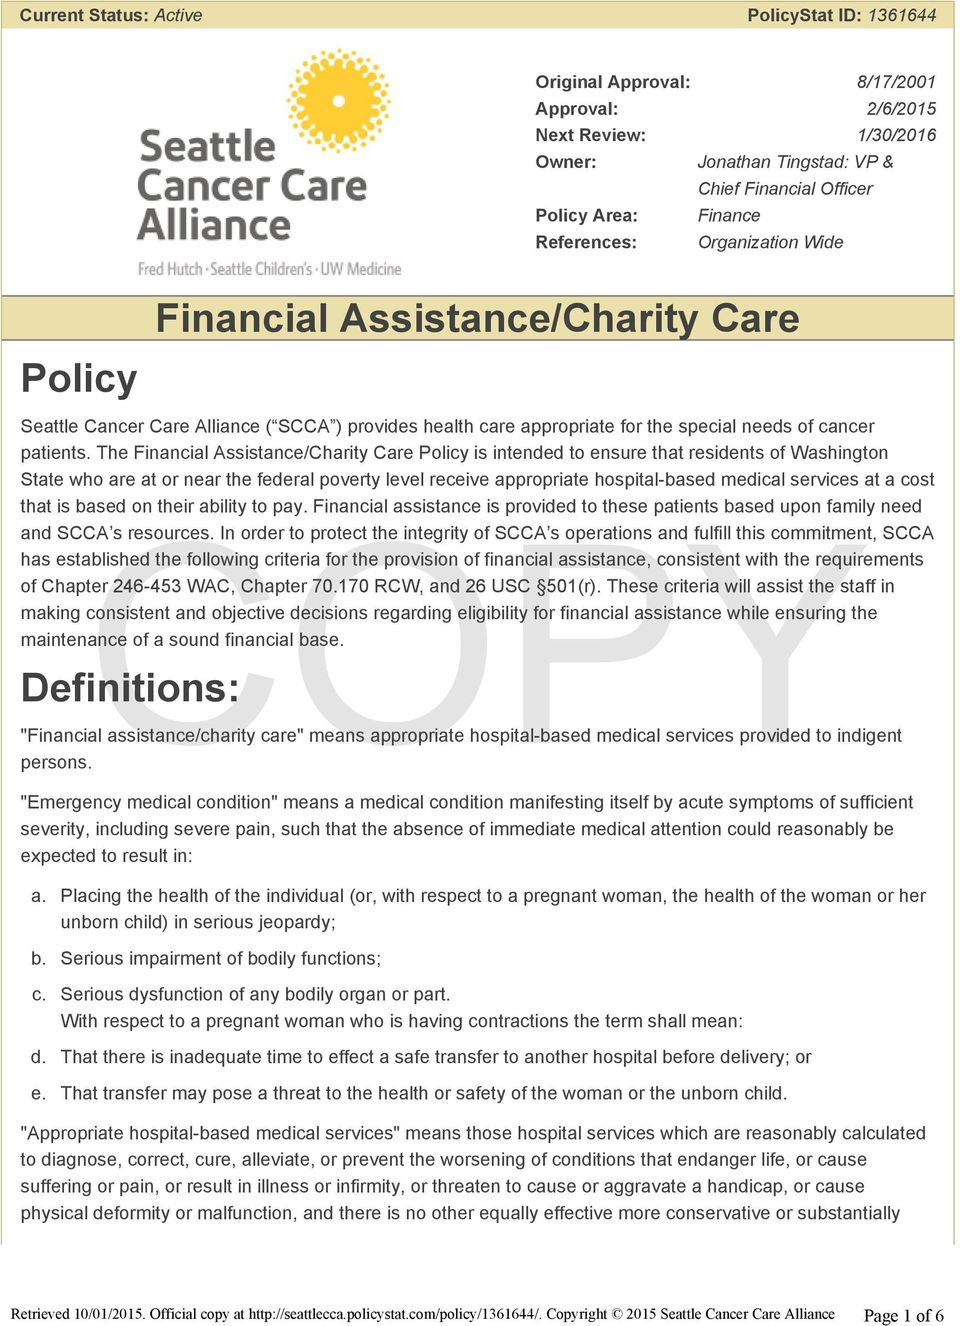 The Financial Assistance/Charity Care Policy is intended to ensure that residents of Washington State who are at or near the federal poverty level receive appropriate hospital-based medical services